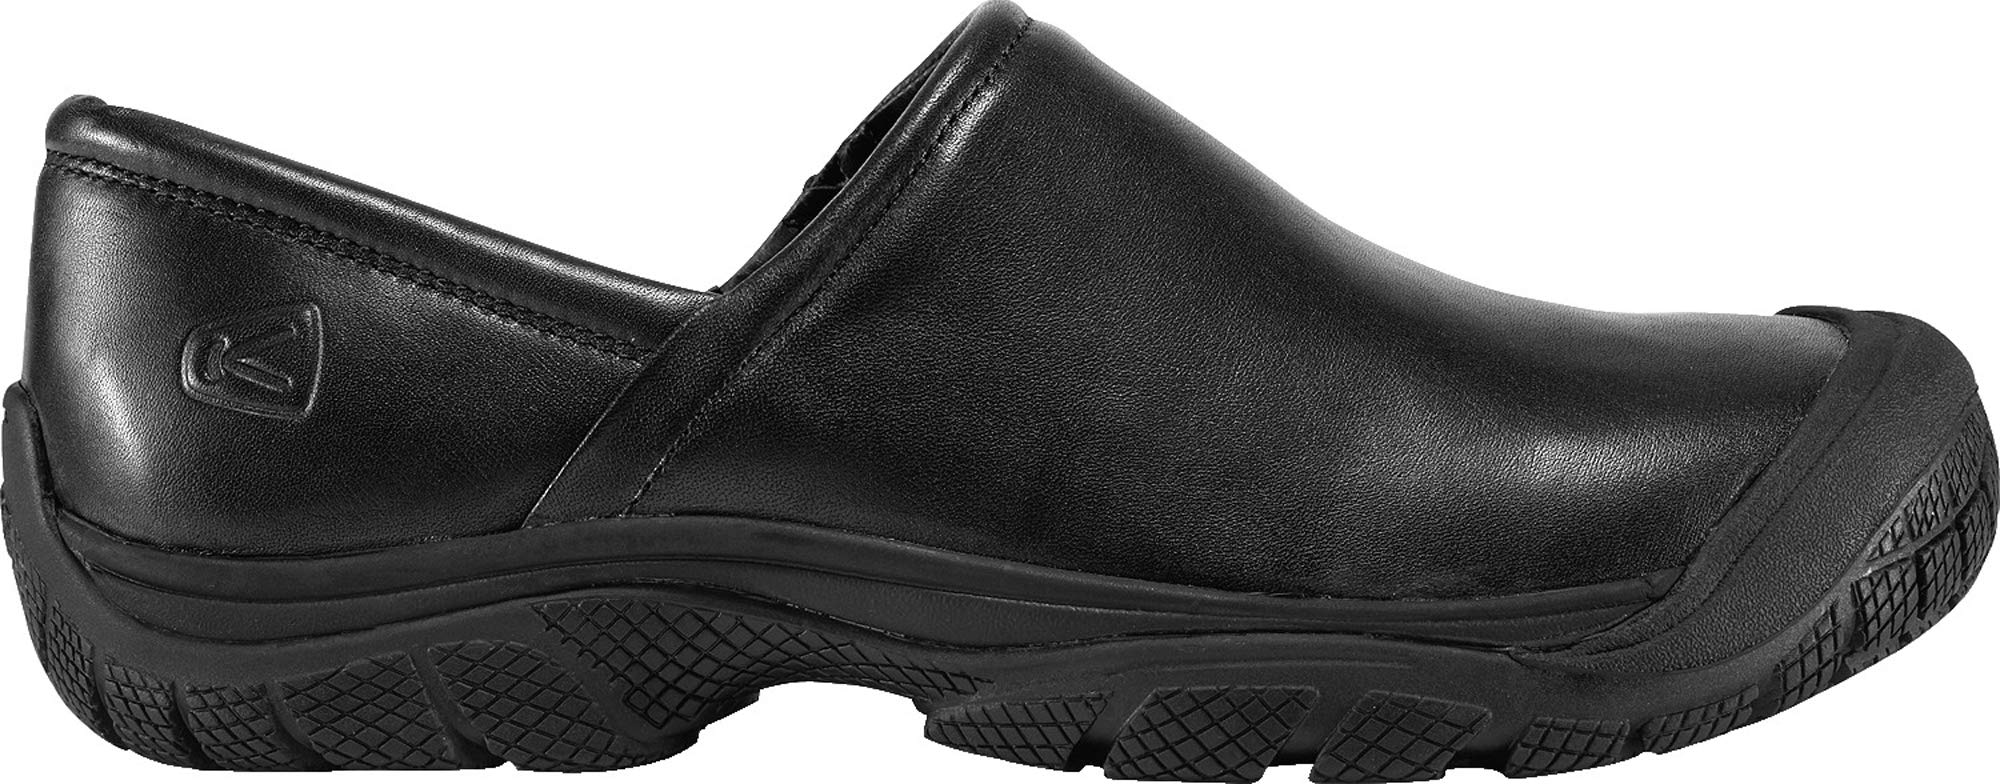 KEEN Utility Men's PTC Clog Non Slip Chef Work Shoe by KEEN Utility